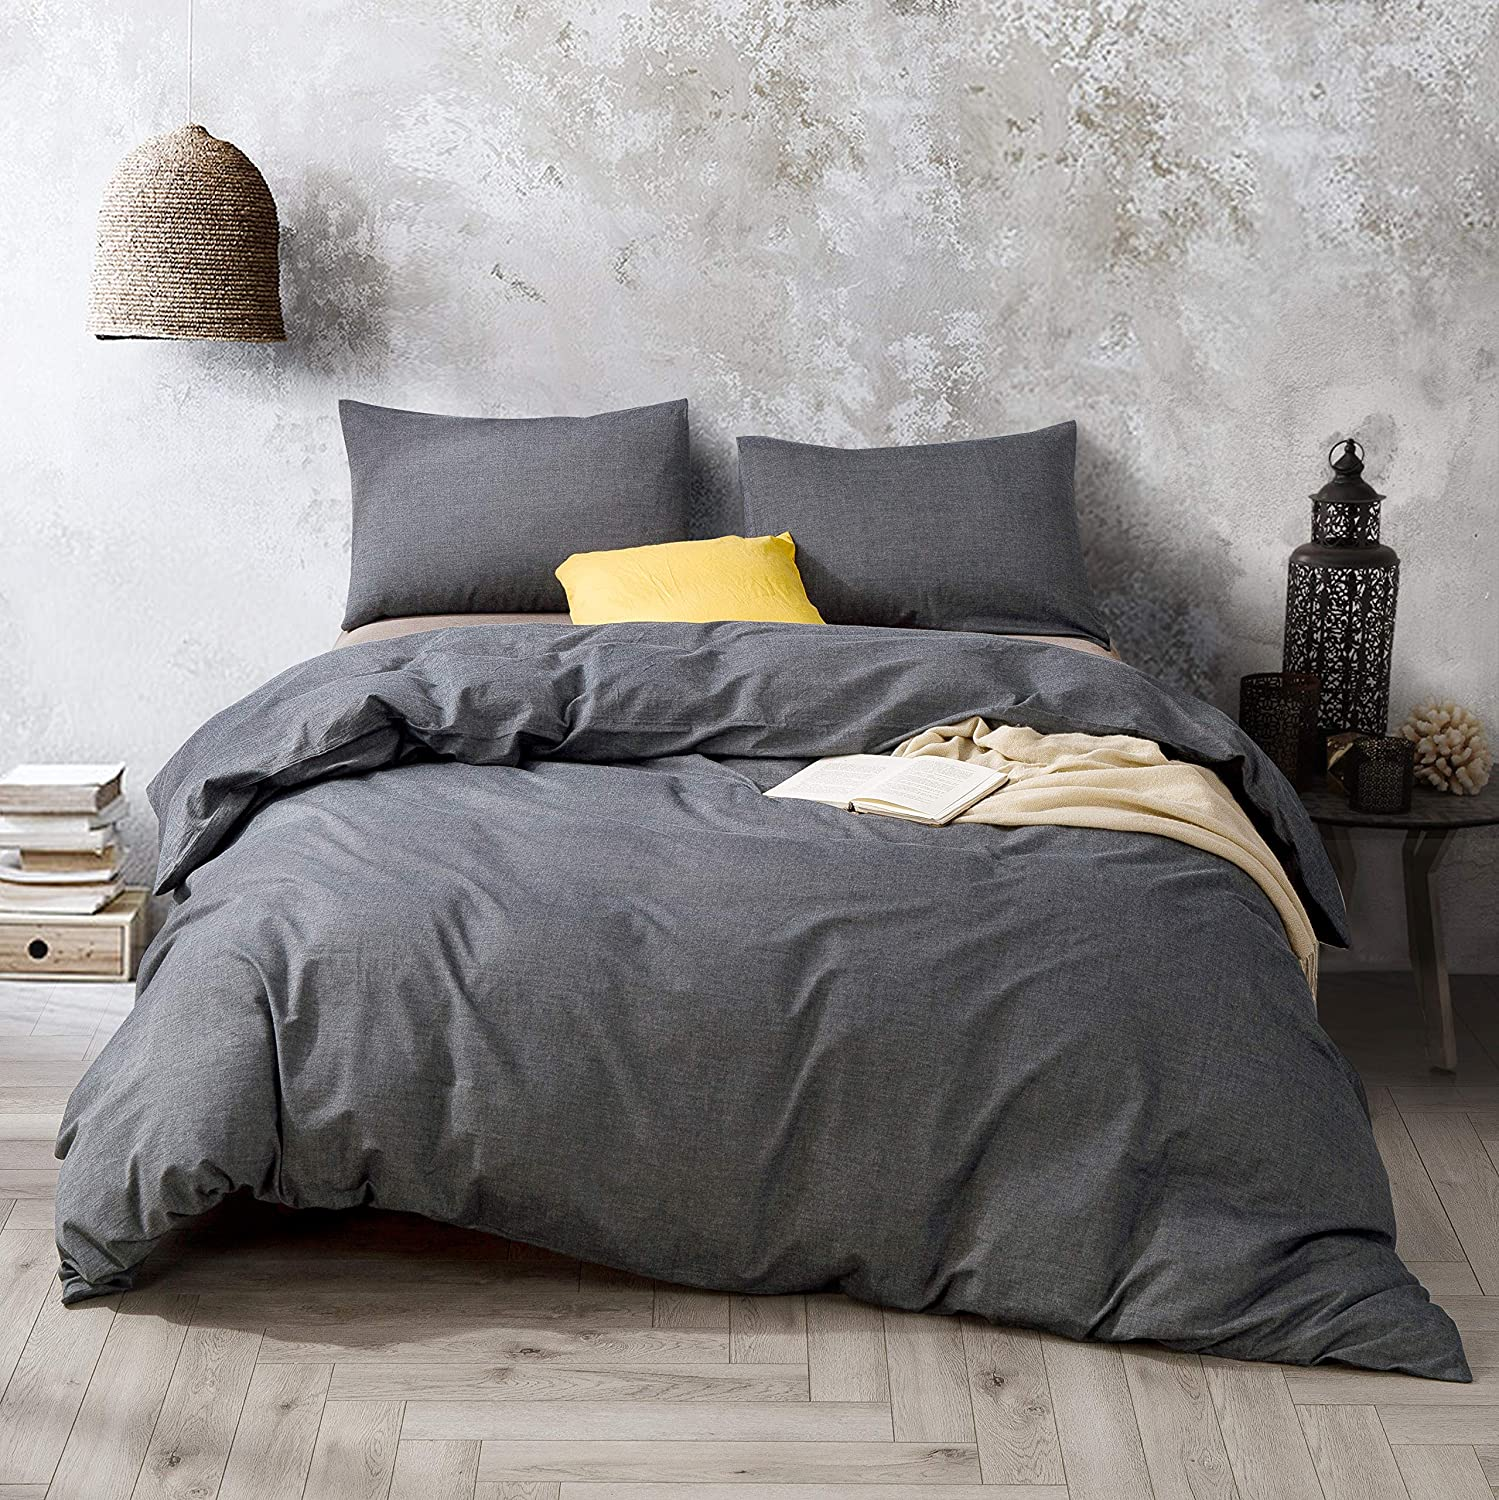 ATsense Duvet Cover King, 100% Washed Cotton, Bedding Duvet Cover Set, 3-Piece, Ultra Soft and Easy Care, Simple Style Bedding Set (Dark Grey 7003-4)